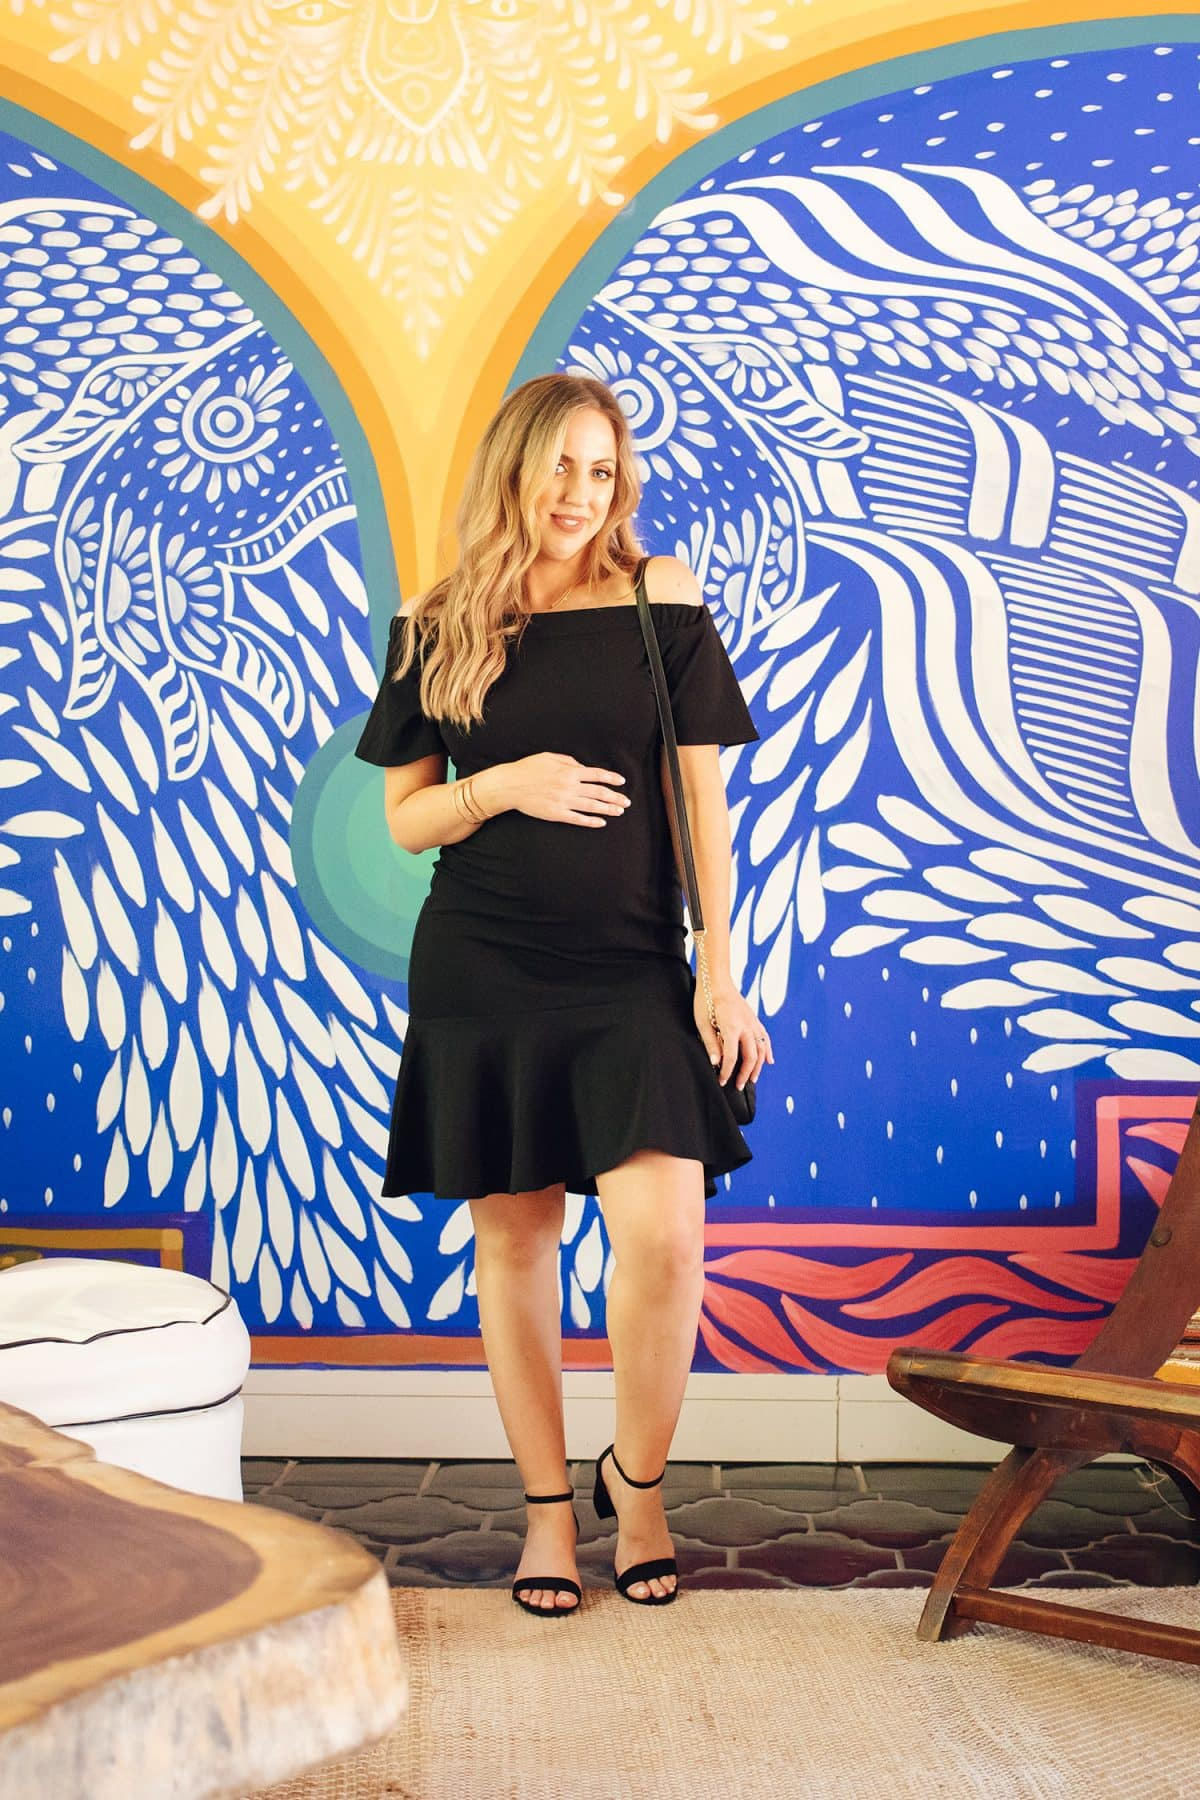 Houston mommy blogger Meg O. on the Go shares 3 maternity outfit ideas for spring and summer - little black dress from Pink Blush